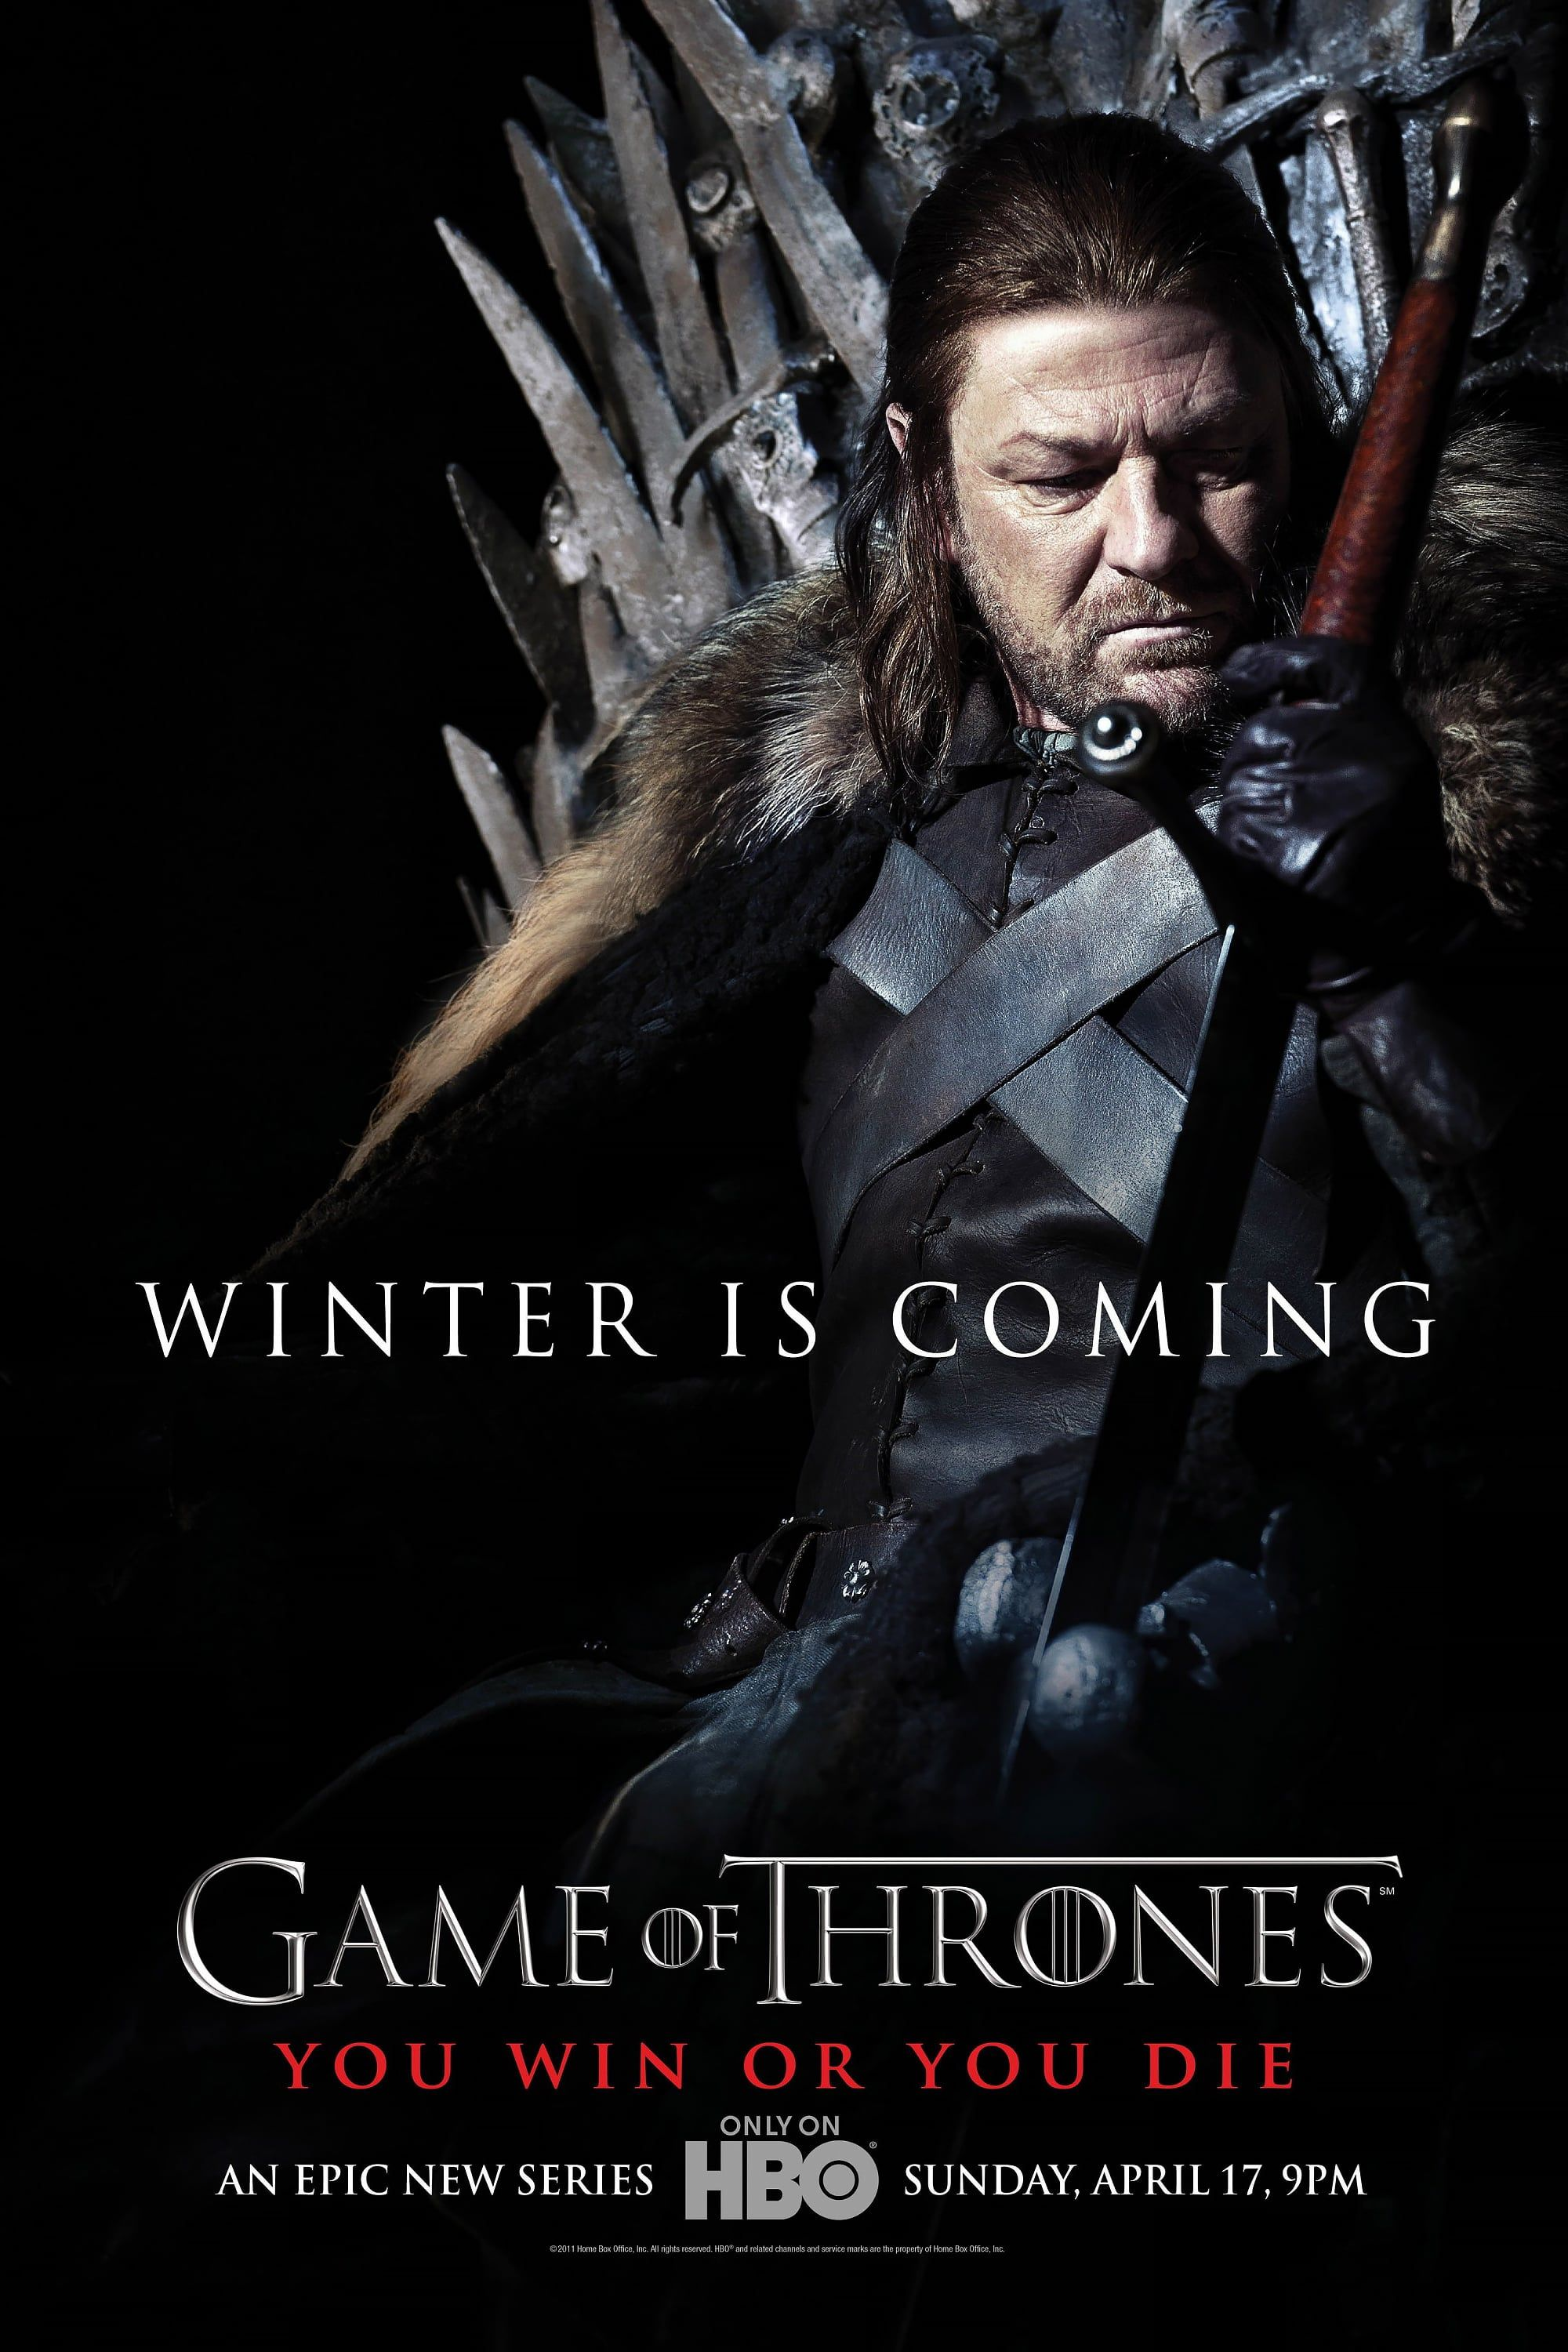 Game Of Thrones Tv Series Full Episodes Hd Quality Click The Picture And Follow The Watch Game Of Thrones Game Of Thrones Poster Game Of Thrones Episodes